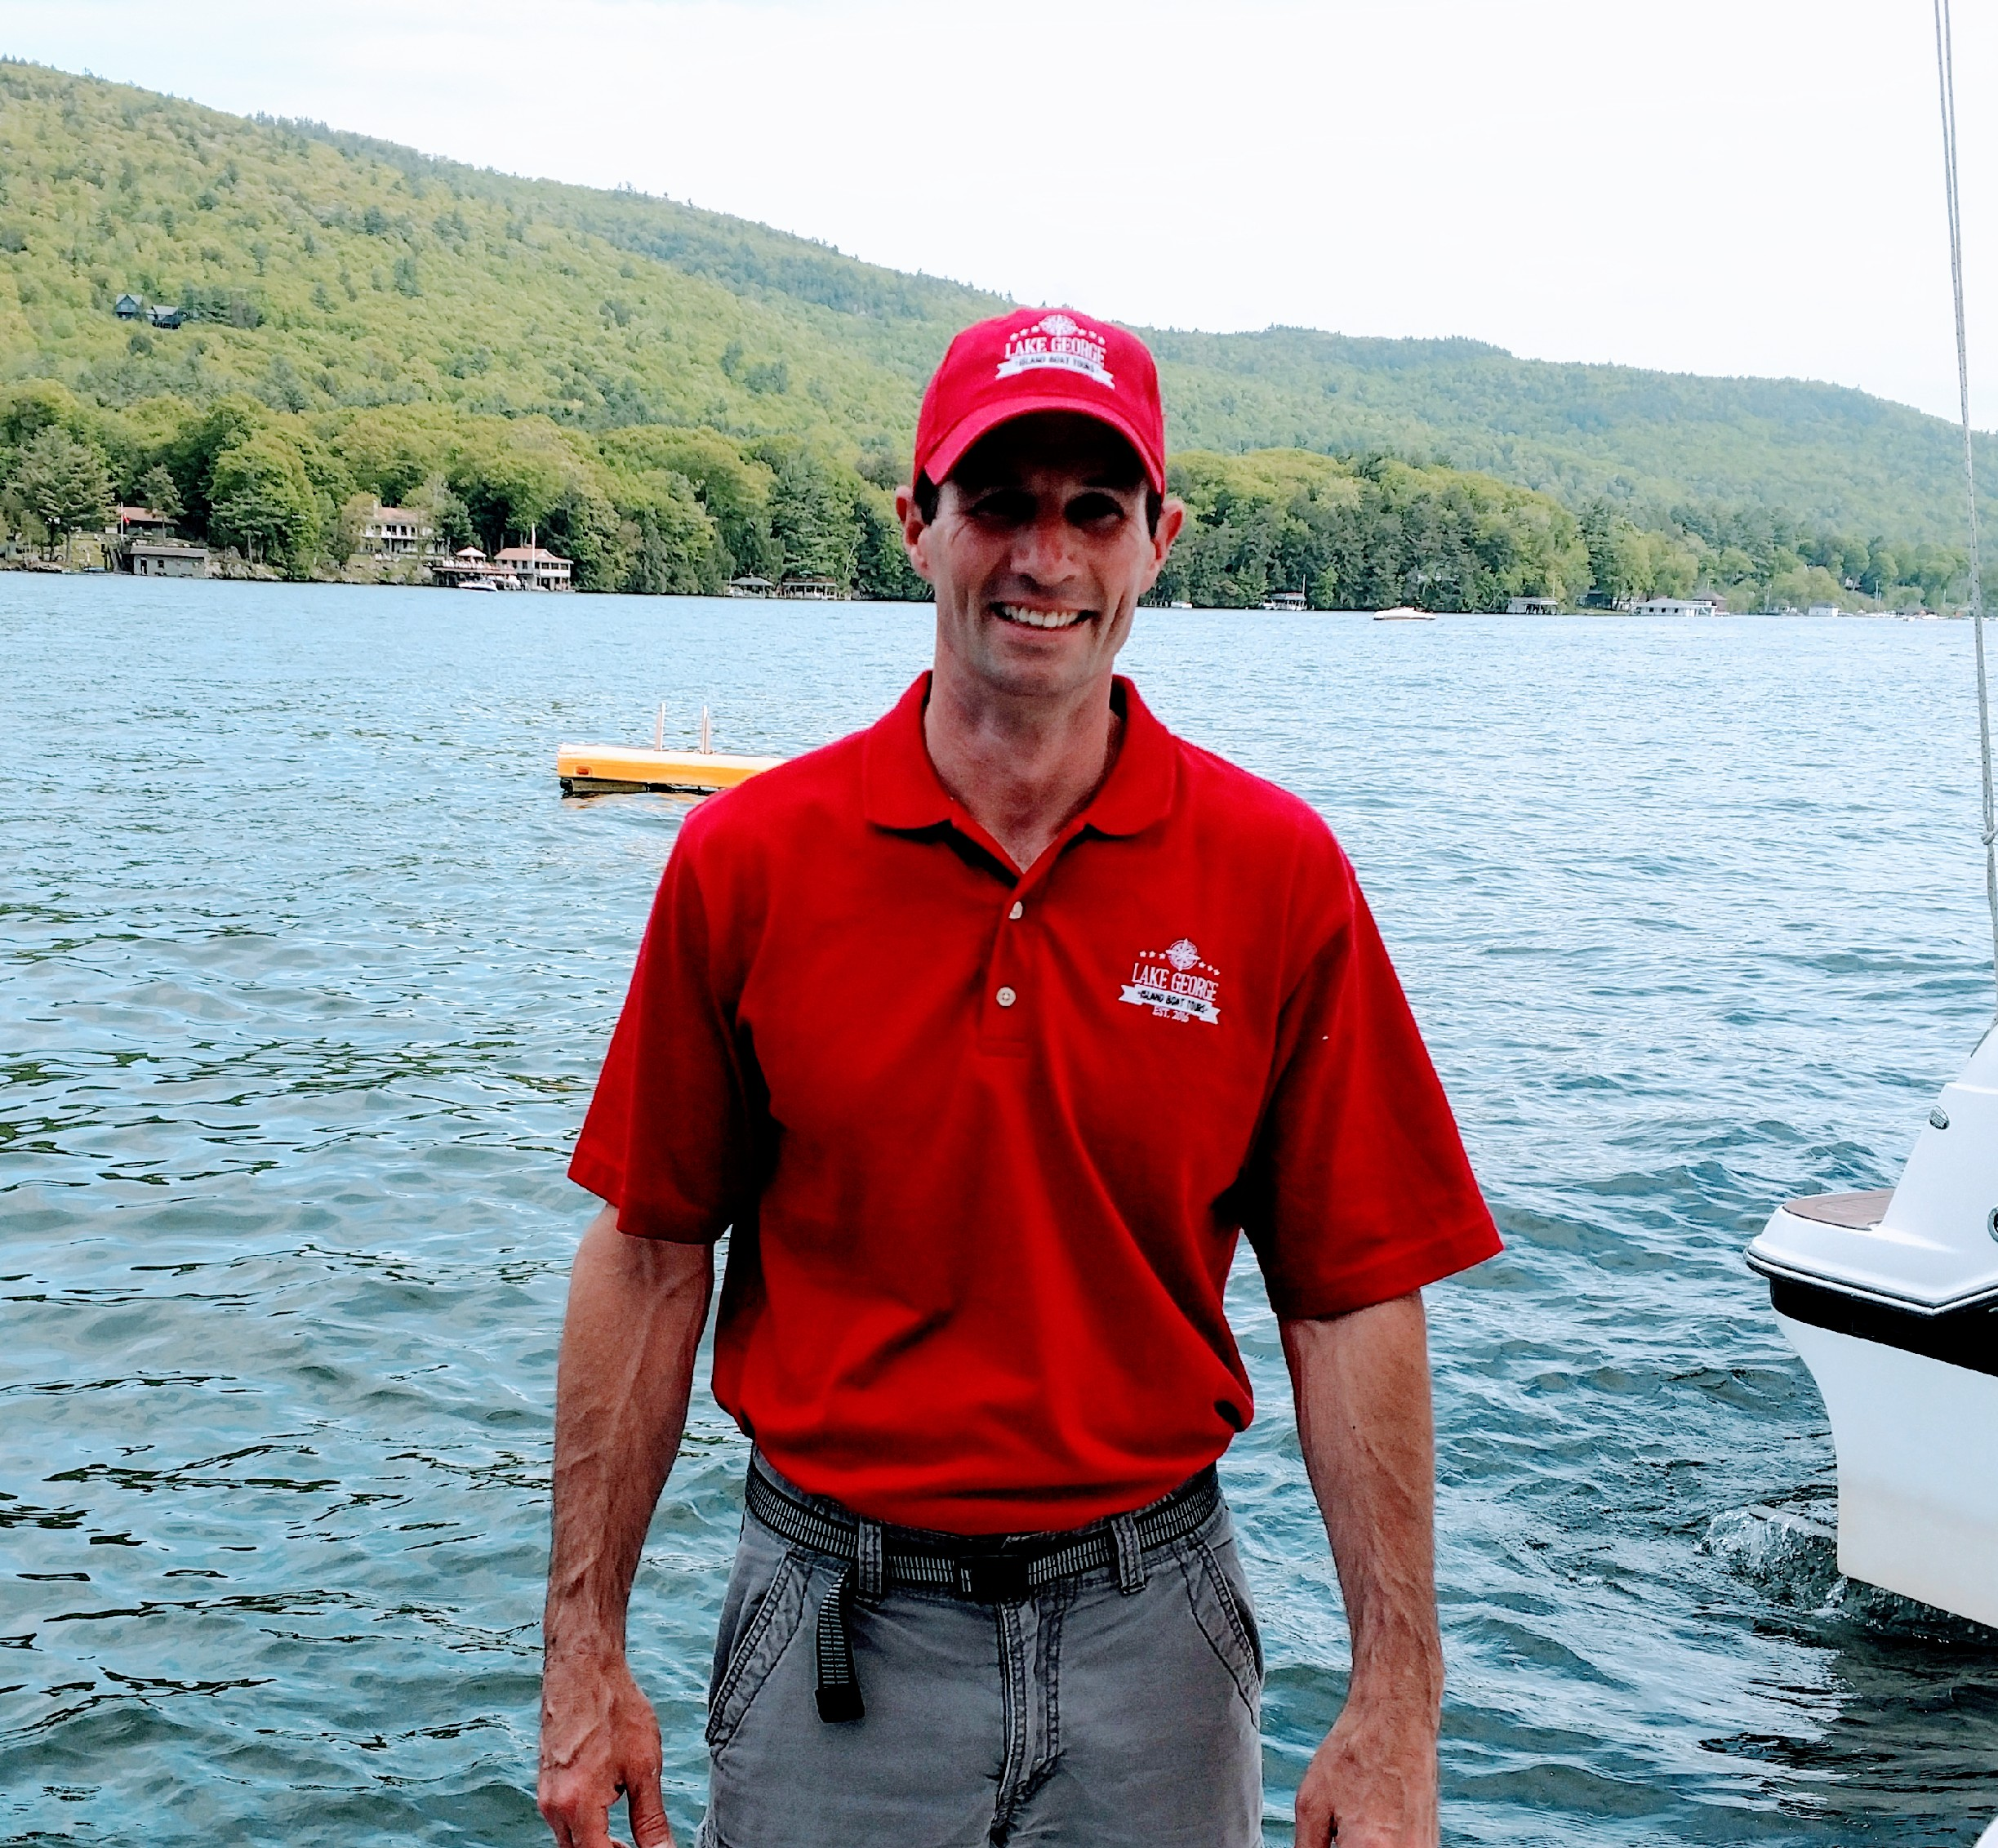 Scott - Scott is a teacher in Saratoga Springs who has been spending his summers on Lake George for over 30 years. In addition to his love of the history and folklore of the area, Scott also enjoys all types of adventure that the lake has to offer. To this day, he partakes in swimming,cliff jumping, wakeboarding, tubing, snorkeling, kayaking and hiking in the area. All of that is balanced, of course, by also relaxing at some of the quieter coves and lesser travelled bays that the lake has to offer. Scott tells us that his favorite part about Lake George is all the wonderful family memories that have been made here over the years – memories he is now making with his own children. He looks forward to helping you make some lasting memories during your time with him on the lake.